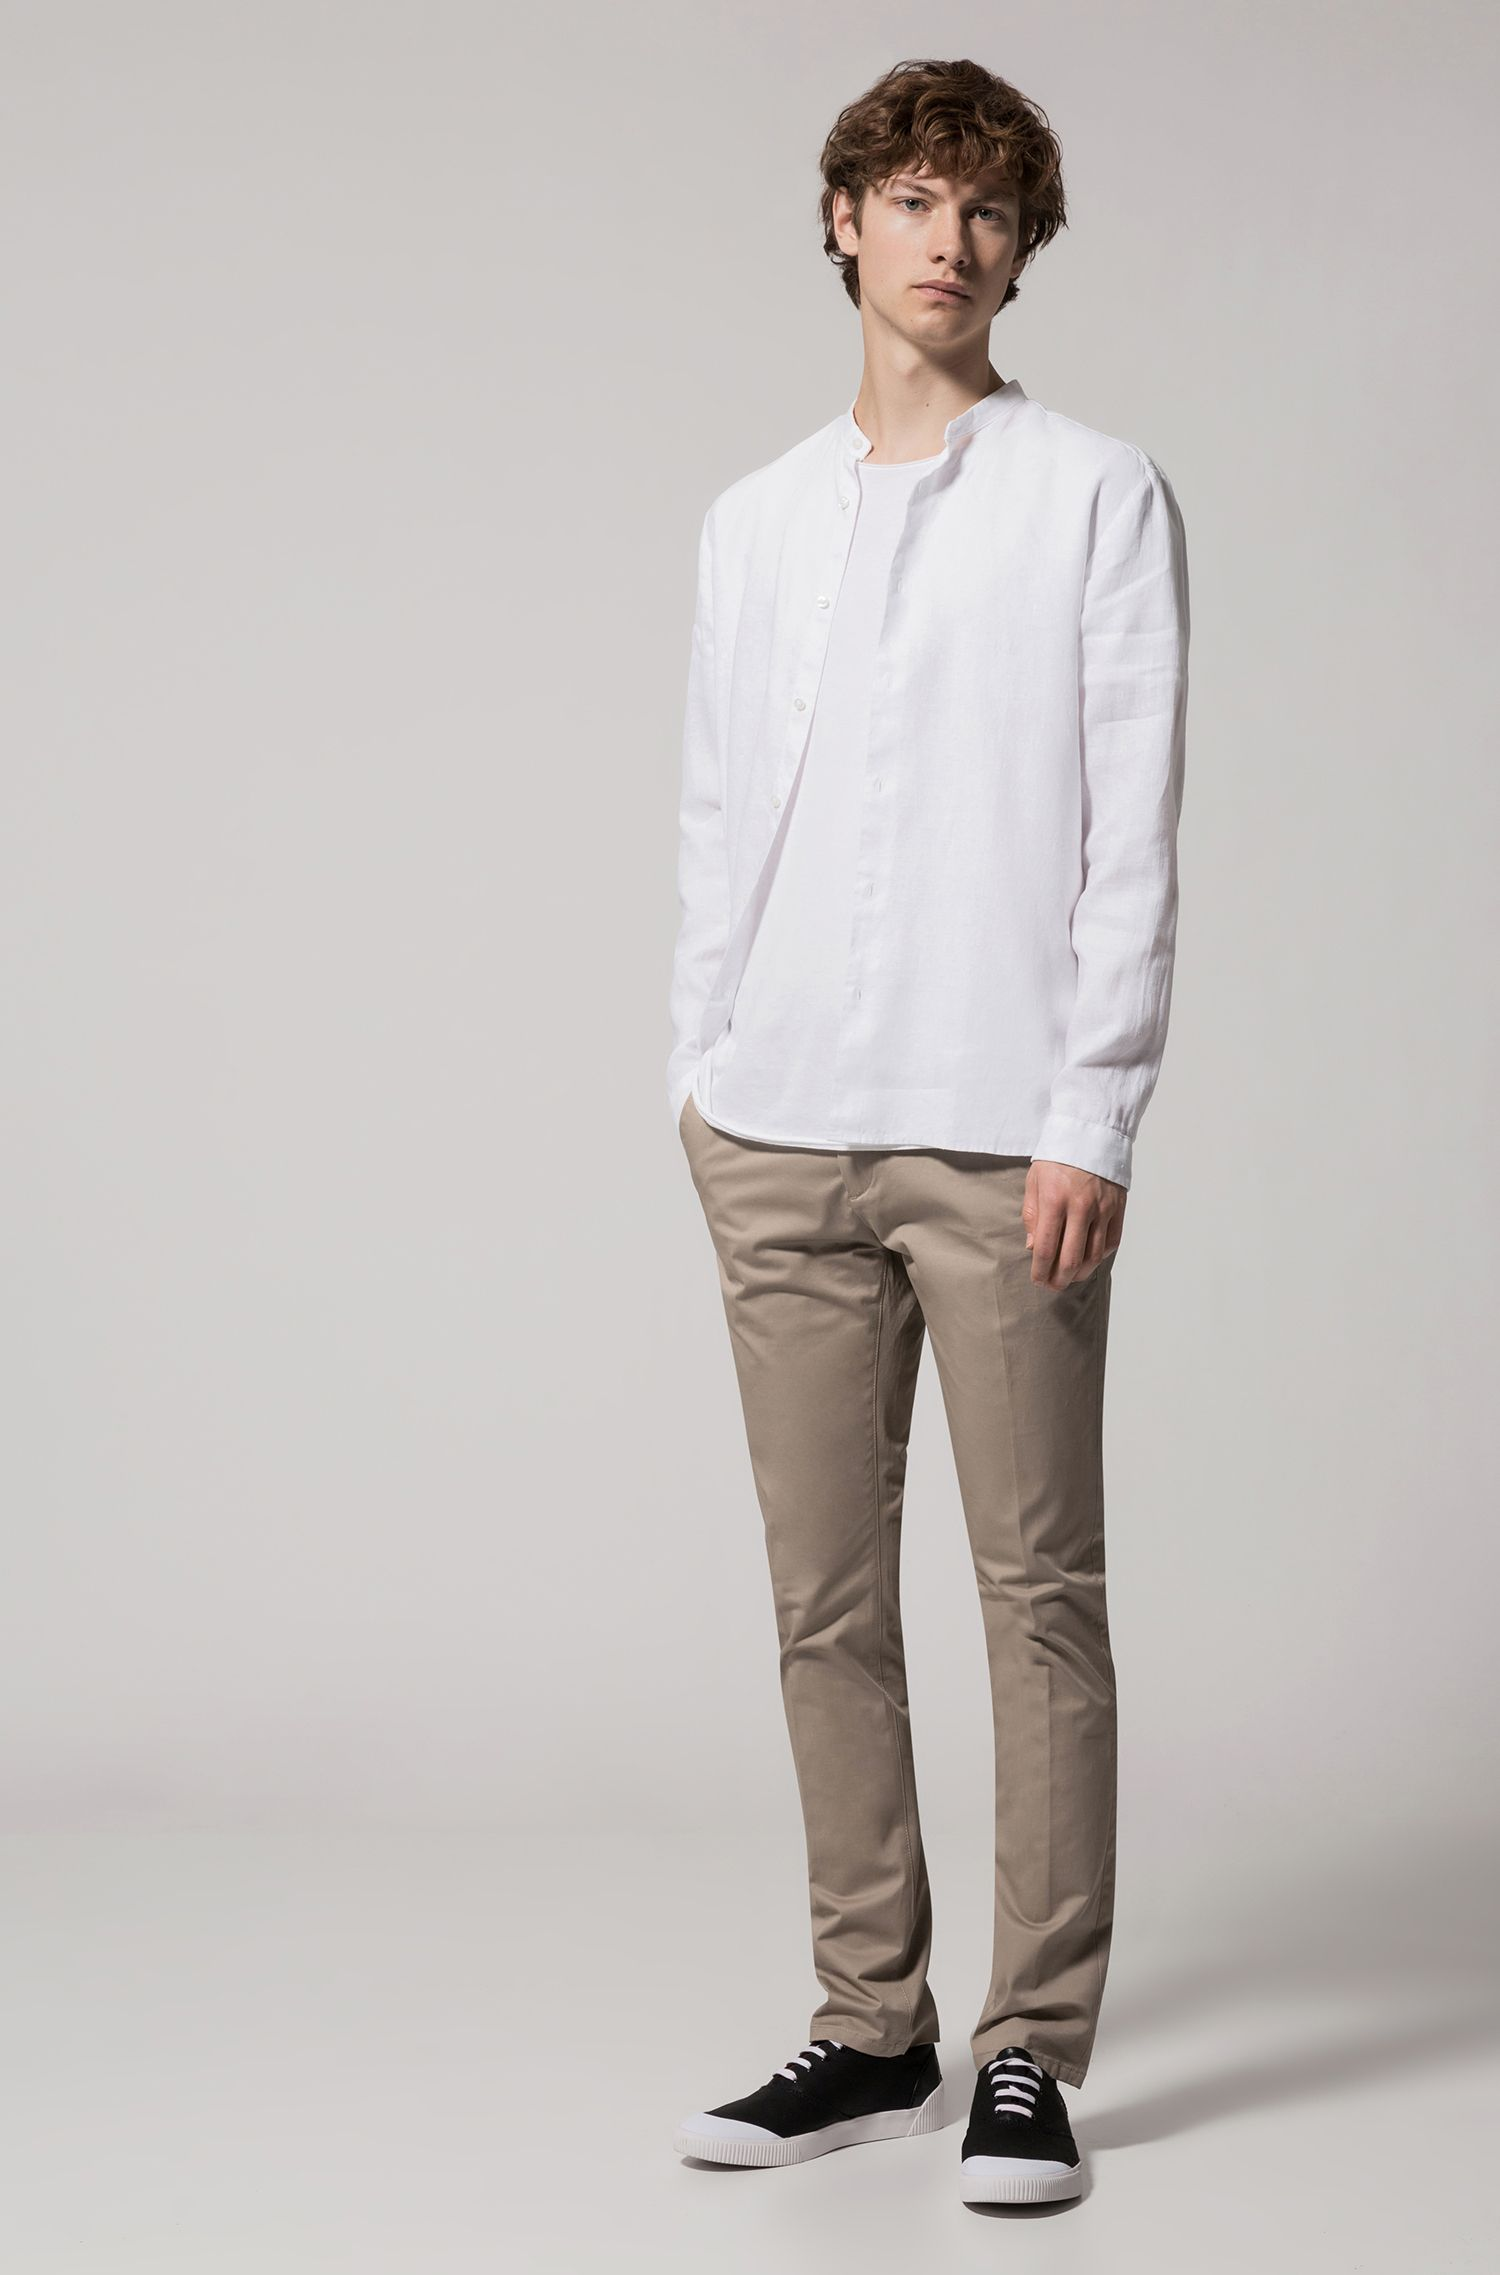 Linen Sport Shirt, Regular Fit | Eddison W, Open White